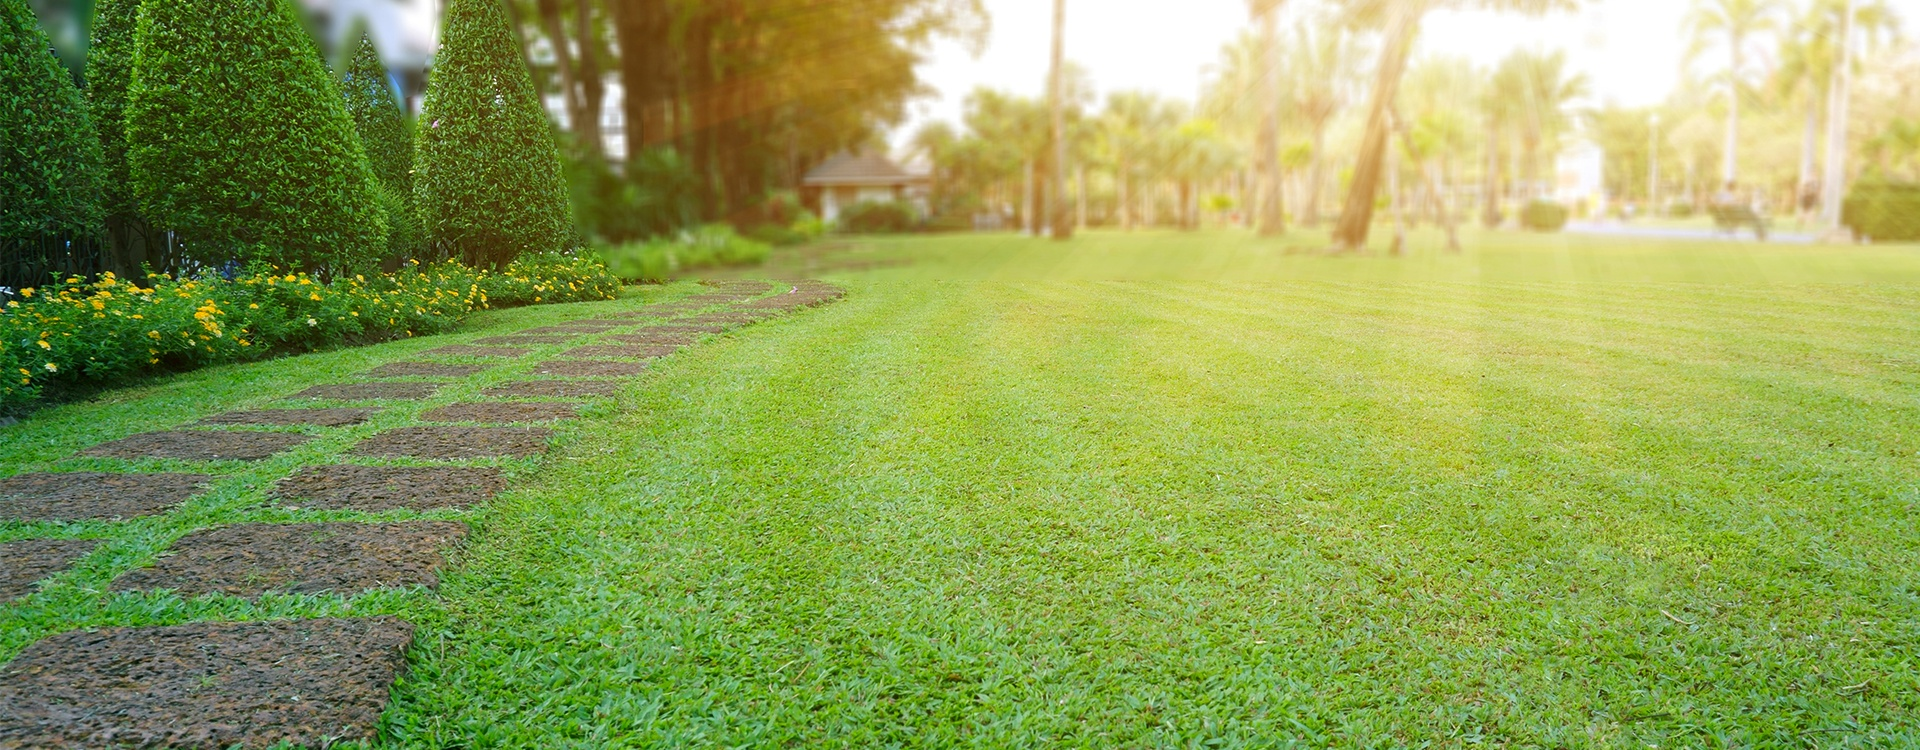 a well maintained residential lawn